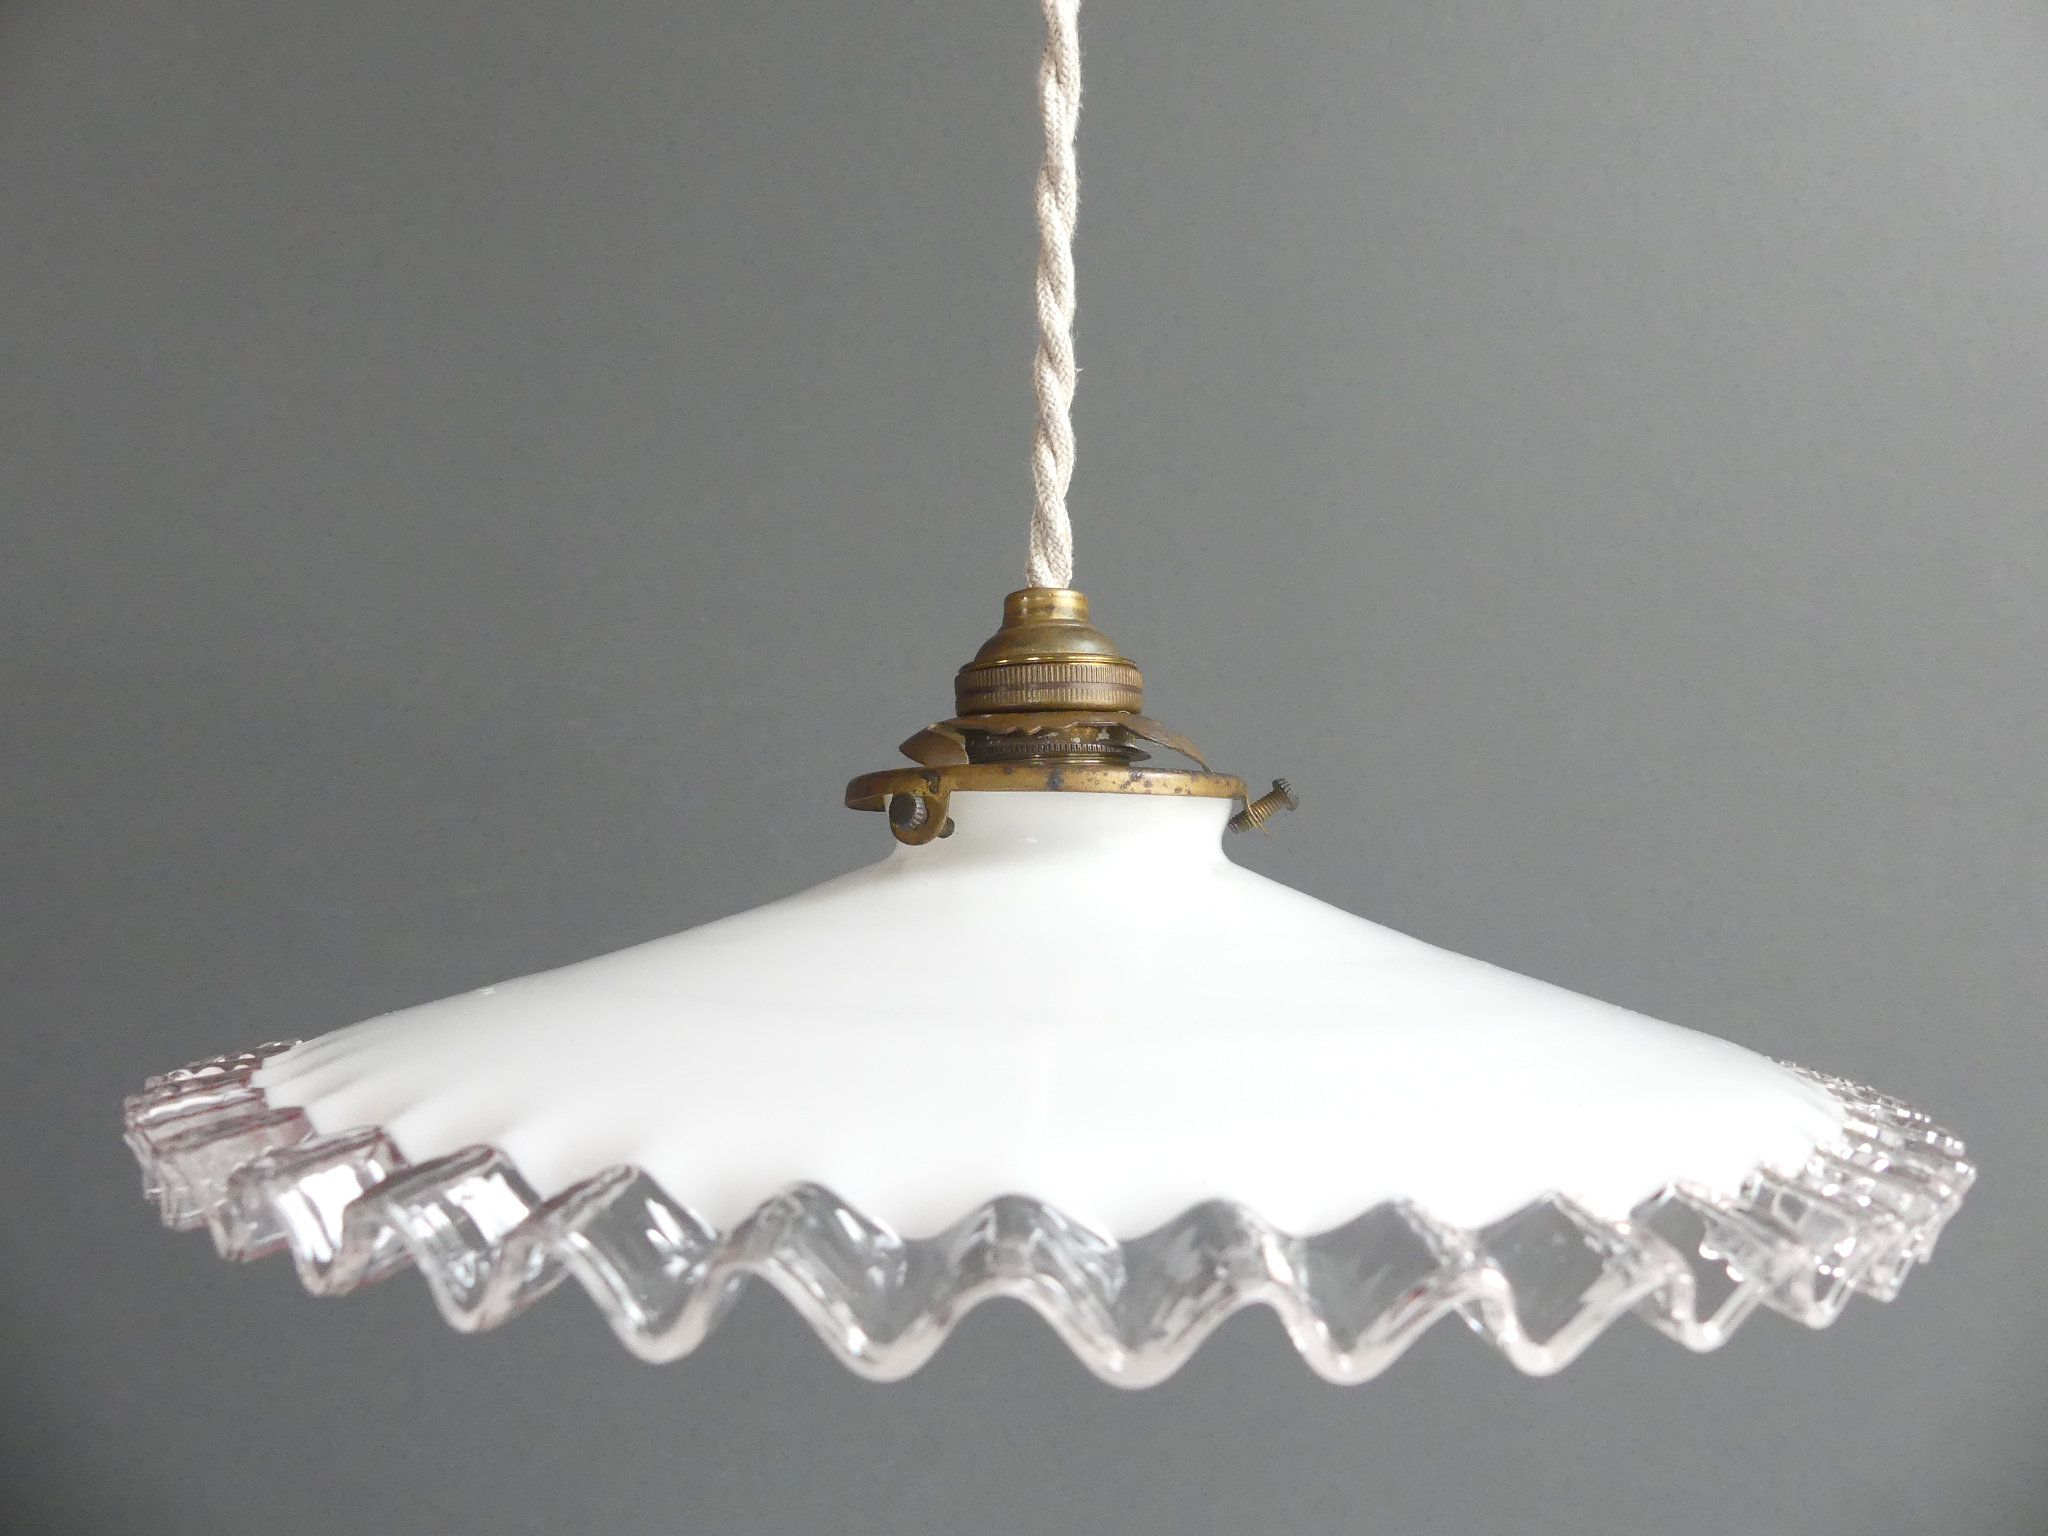 Lampe Opaline Blanche Antique Opaline White Hanging Lamp French 1930 Porcelain